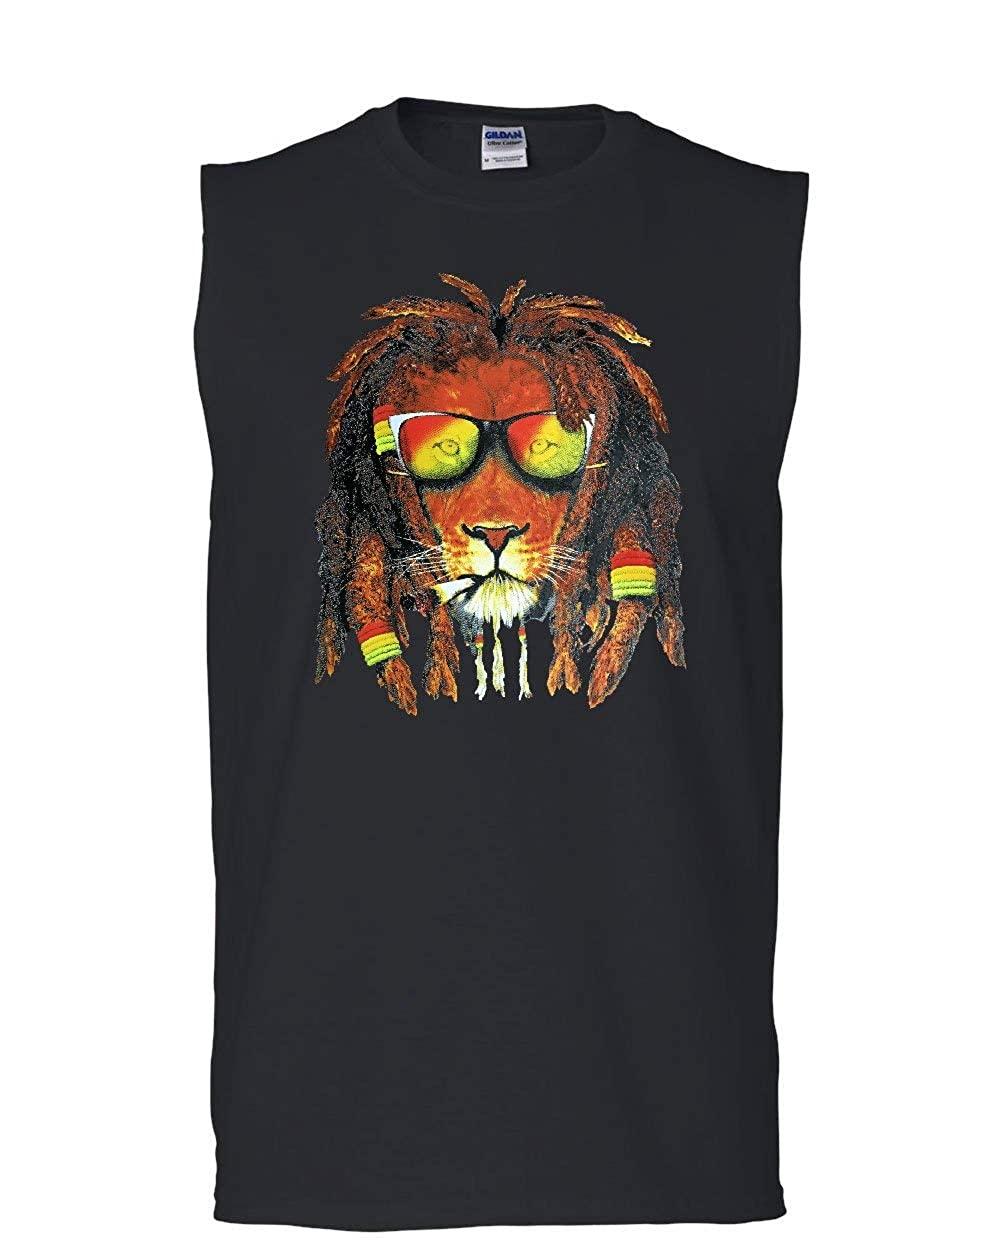 Tee Hunt Rasta Lion Smoking Weed Muscle Shirt 420 Jamaica Jah Reggae Pot Cush Sleeveless